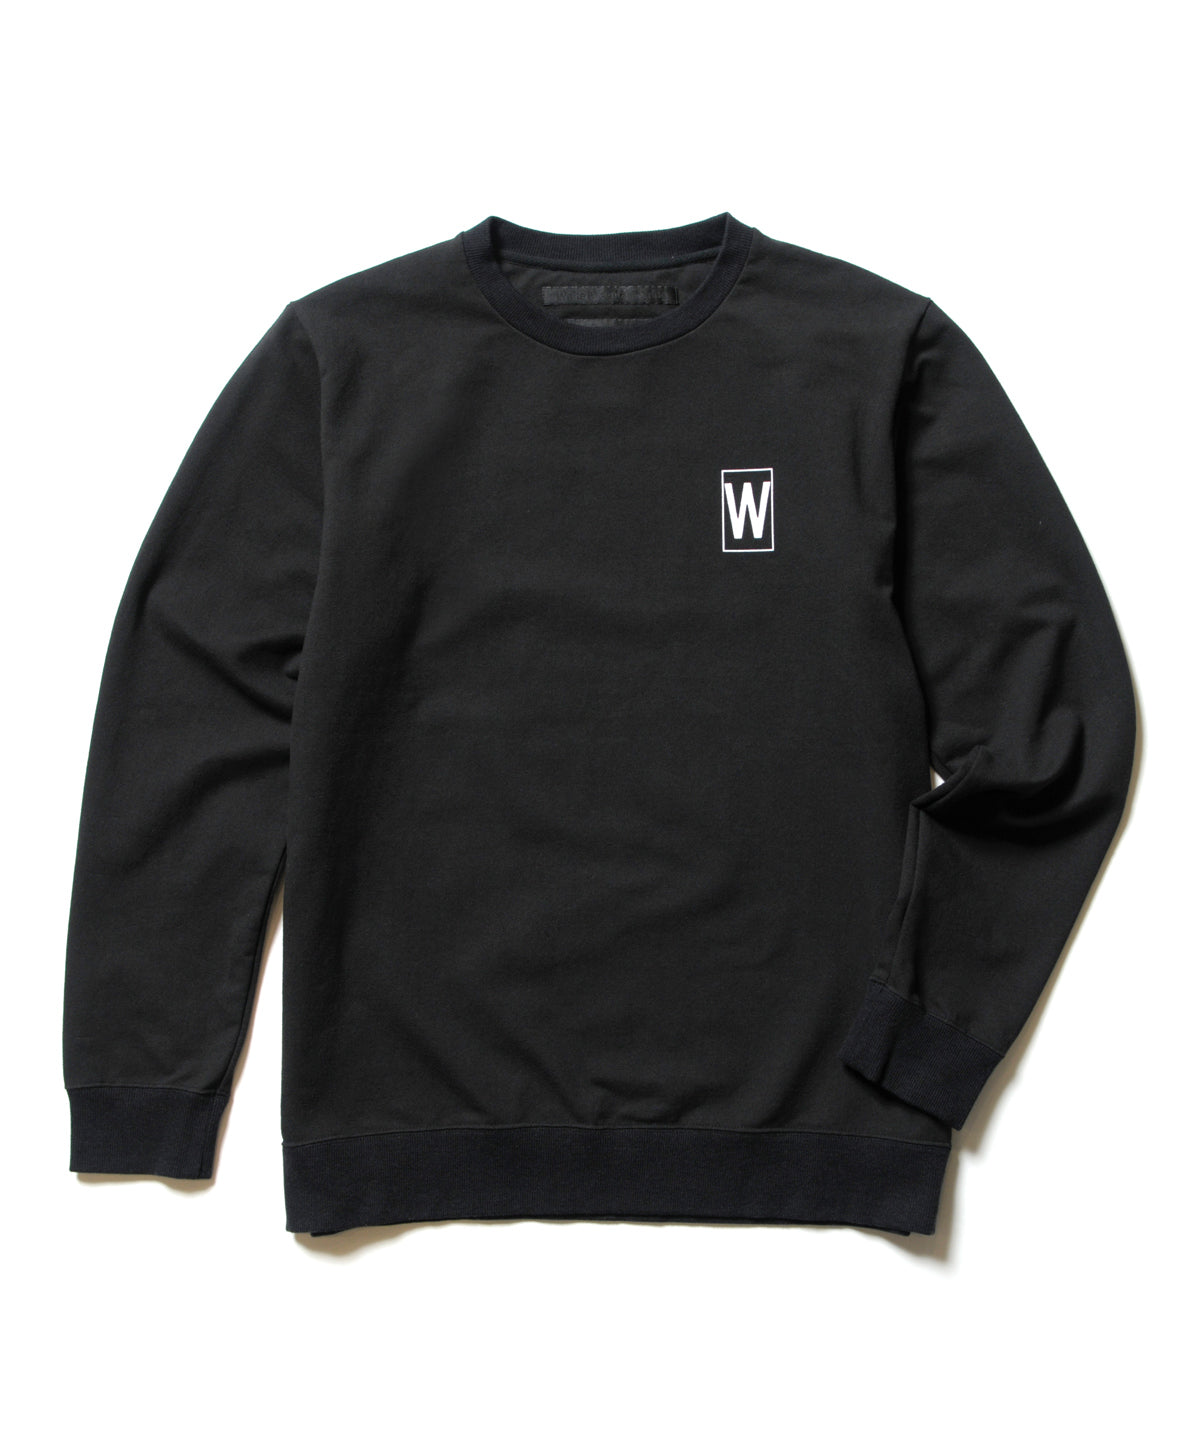 WHITE MOUNTAIN EXPERIMENT GRAMICCI CREWNECK SWEAT